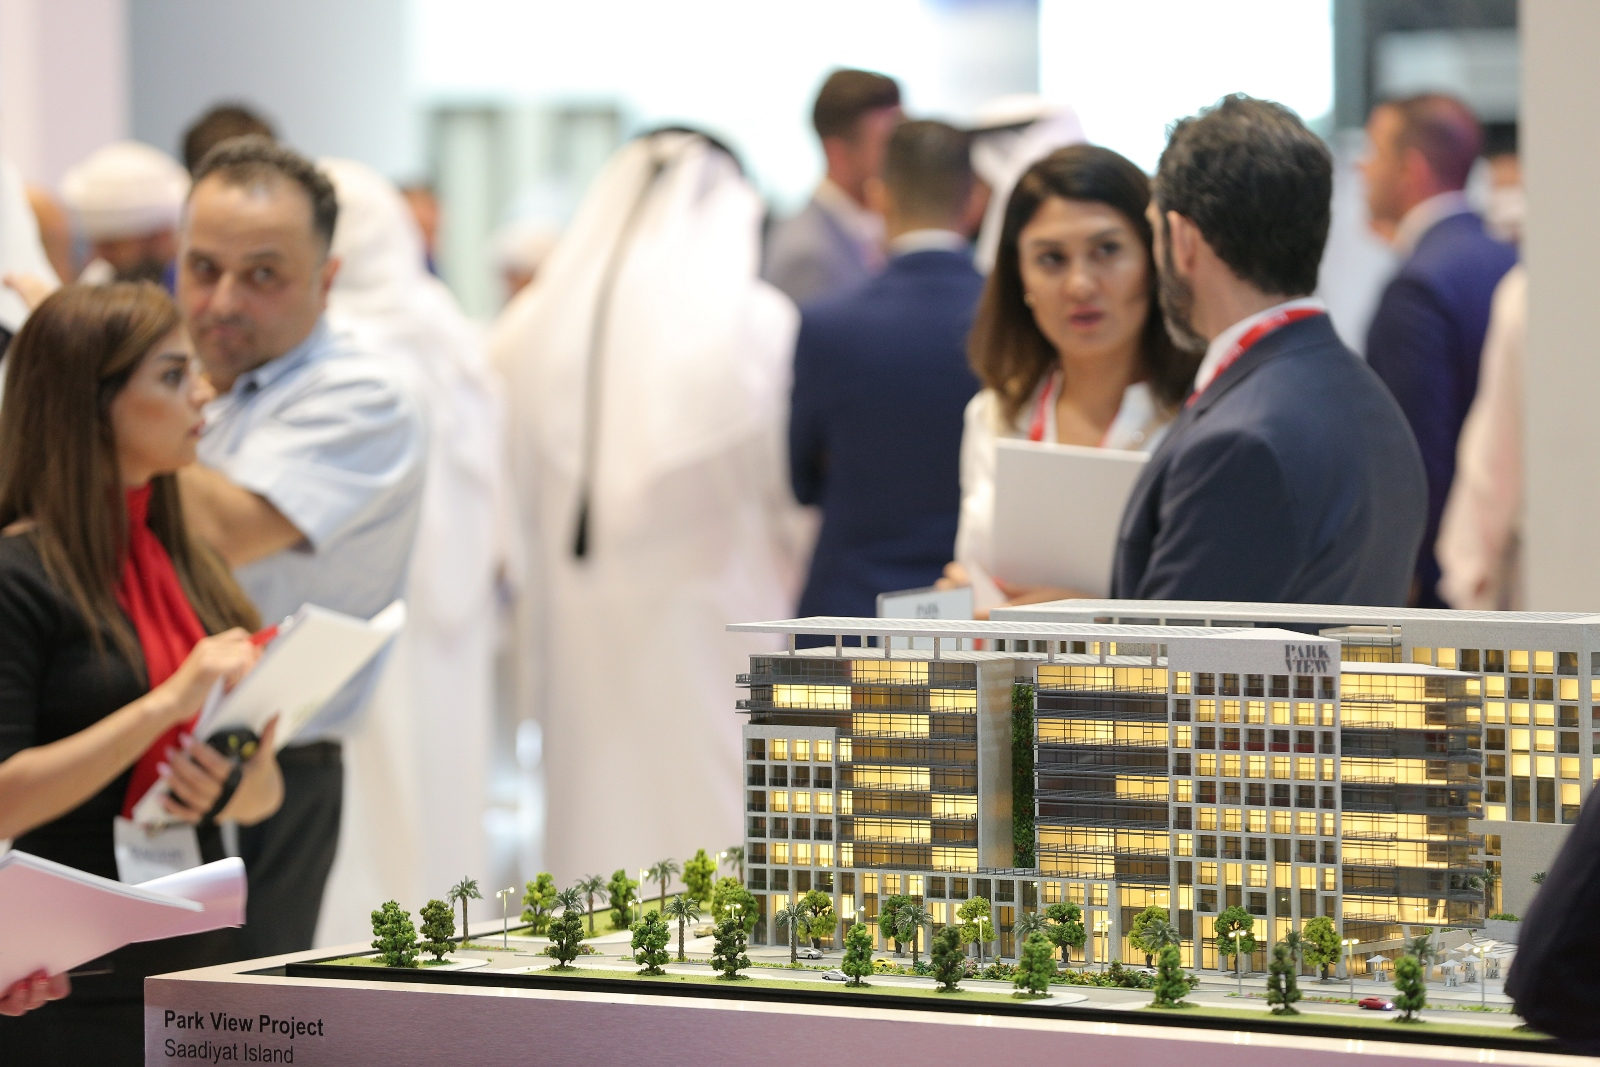 Abu Dhabi Real Estate to Benefit from UAE Growth